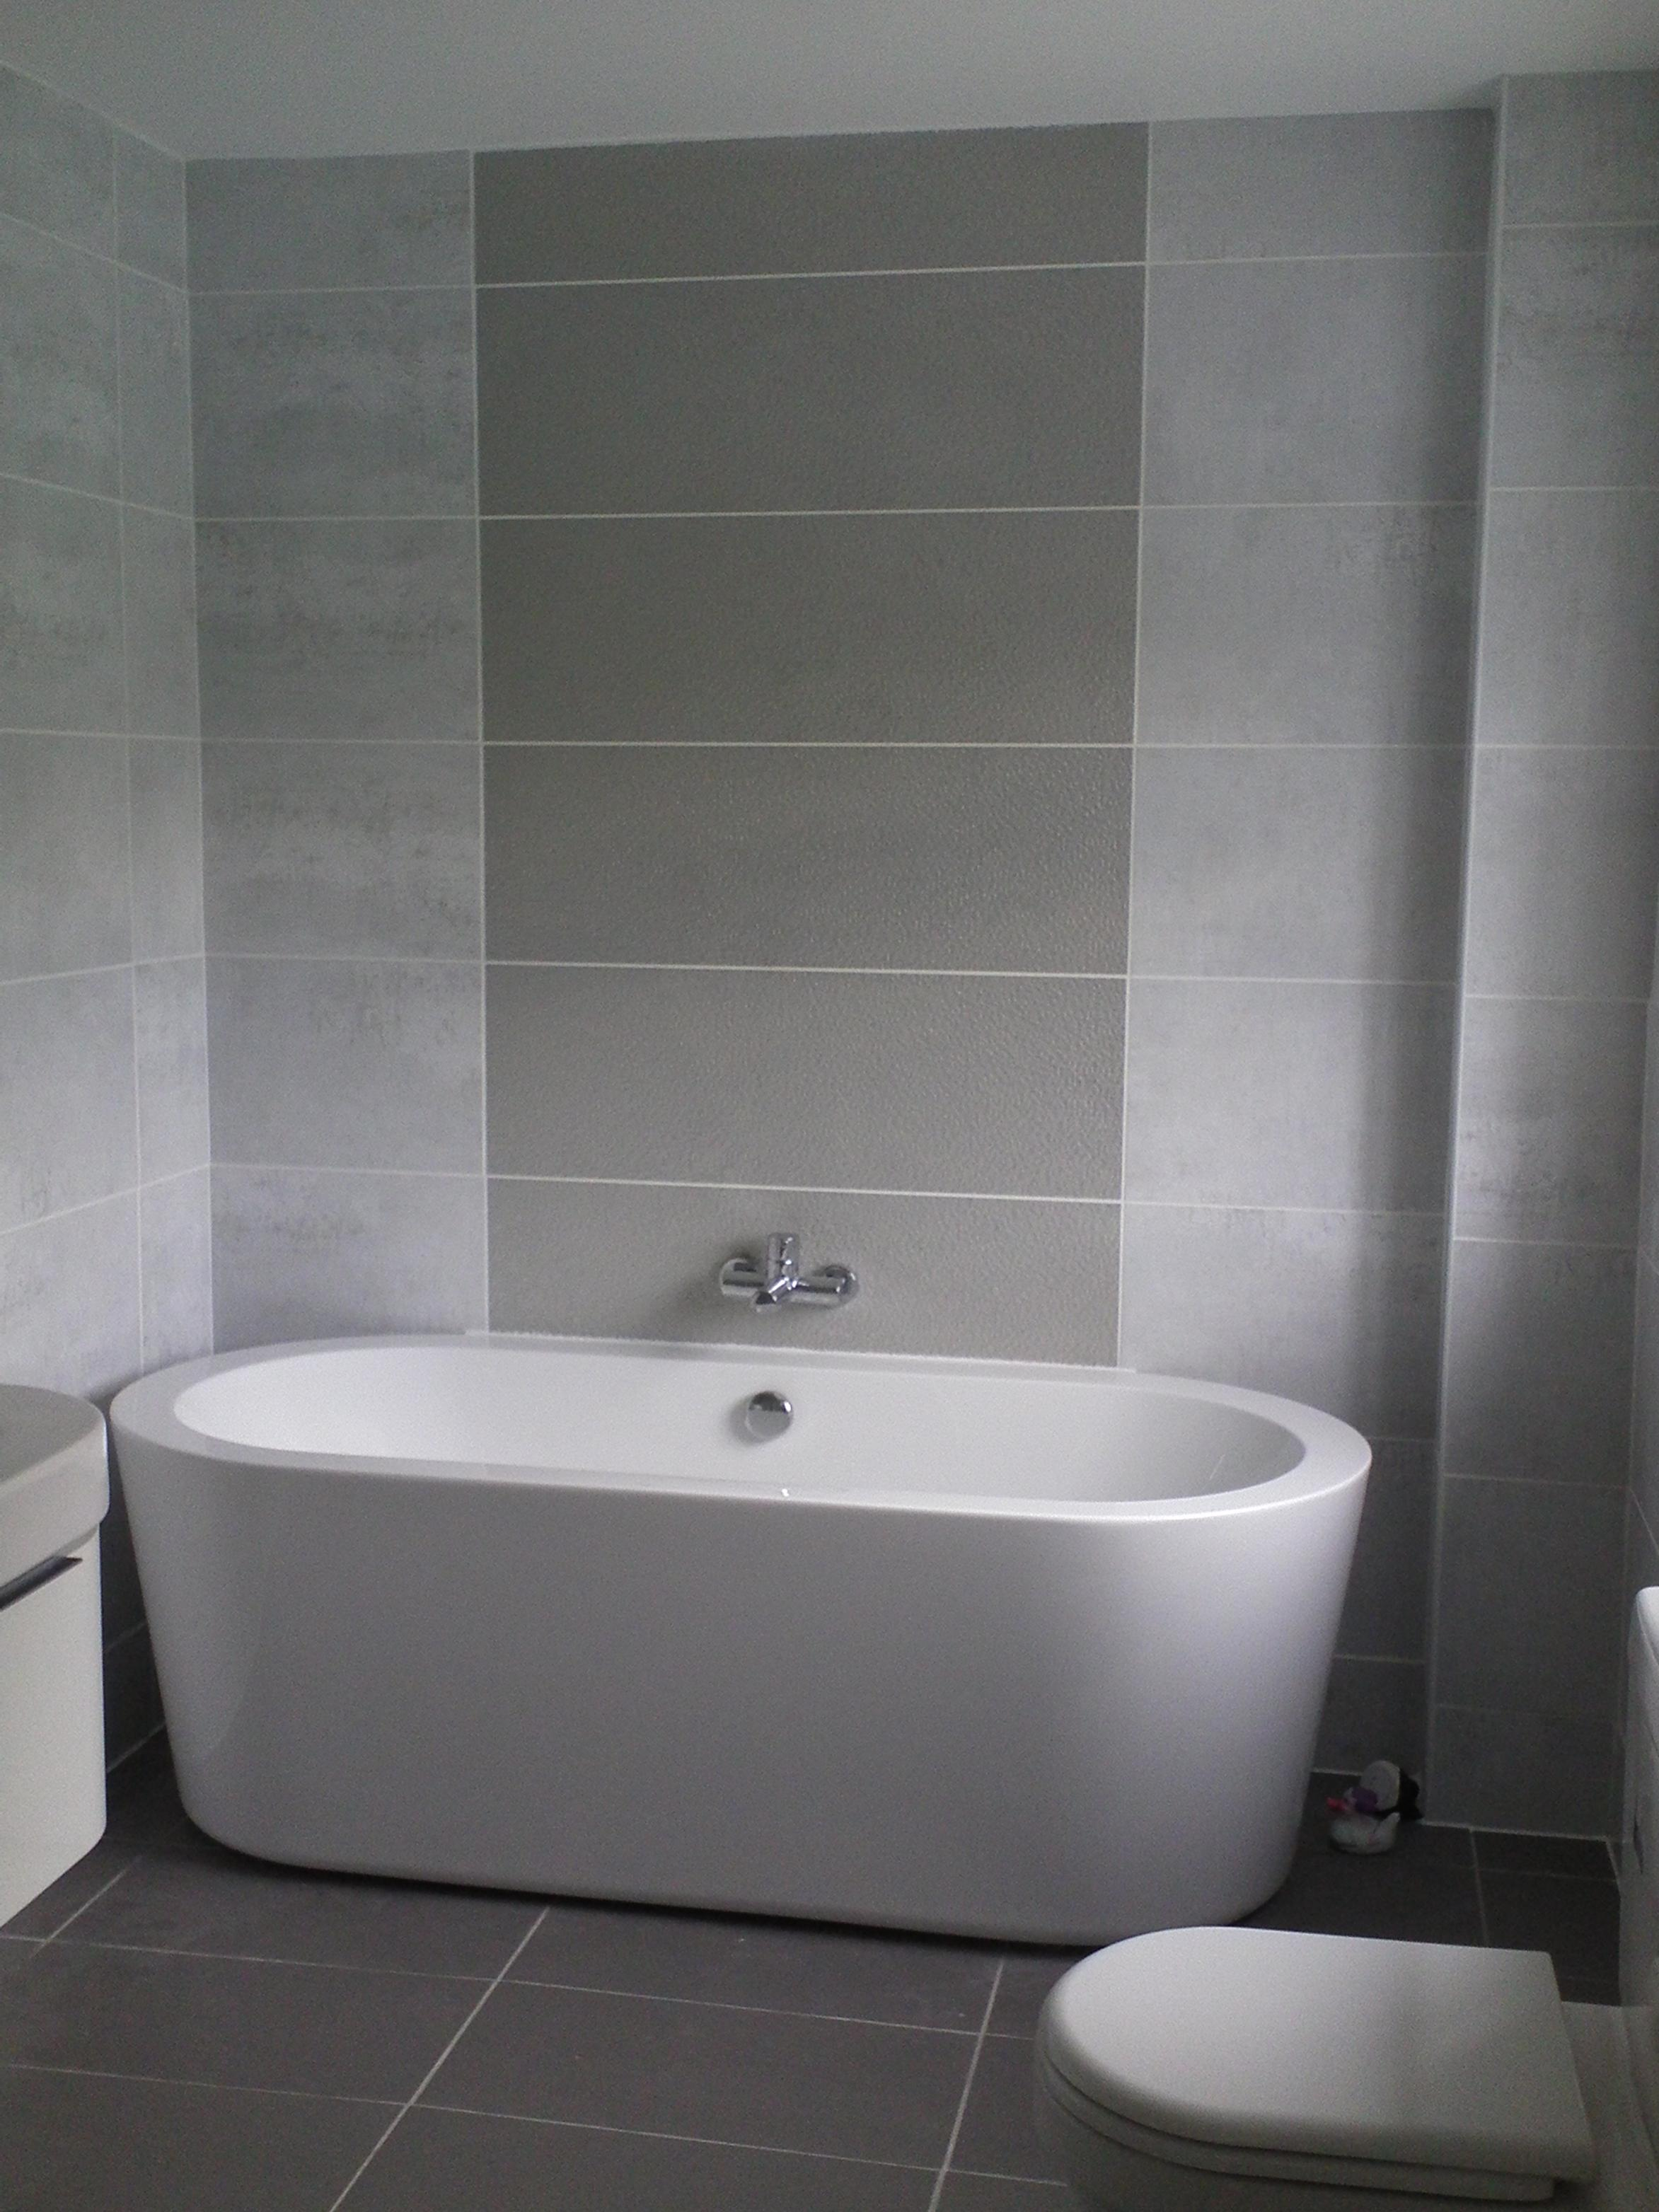 25 grey wall tiles for bathroom ideas and pictures for Grey bathroom tile ideas